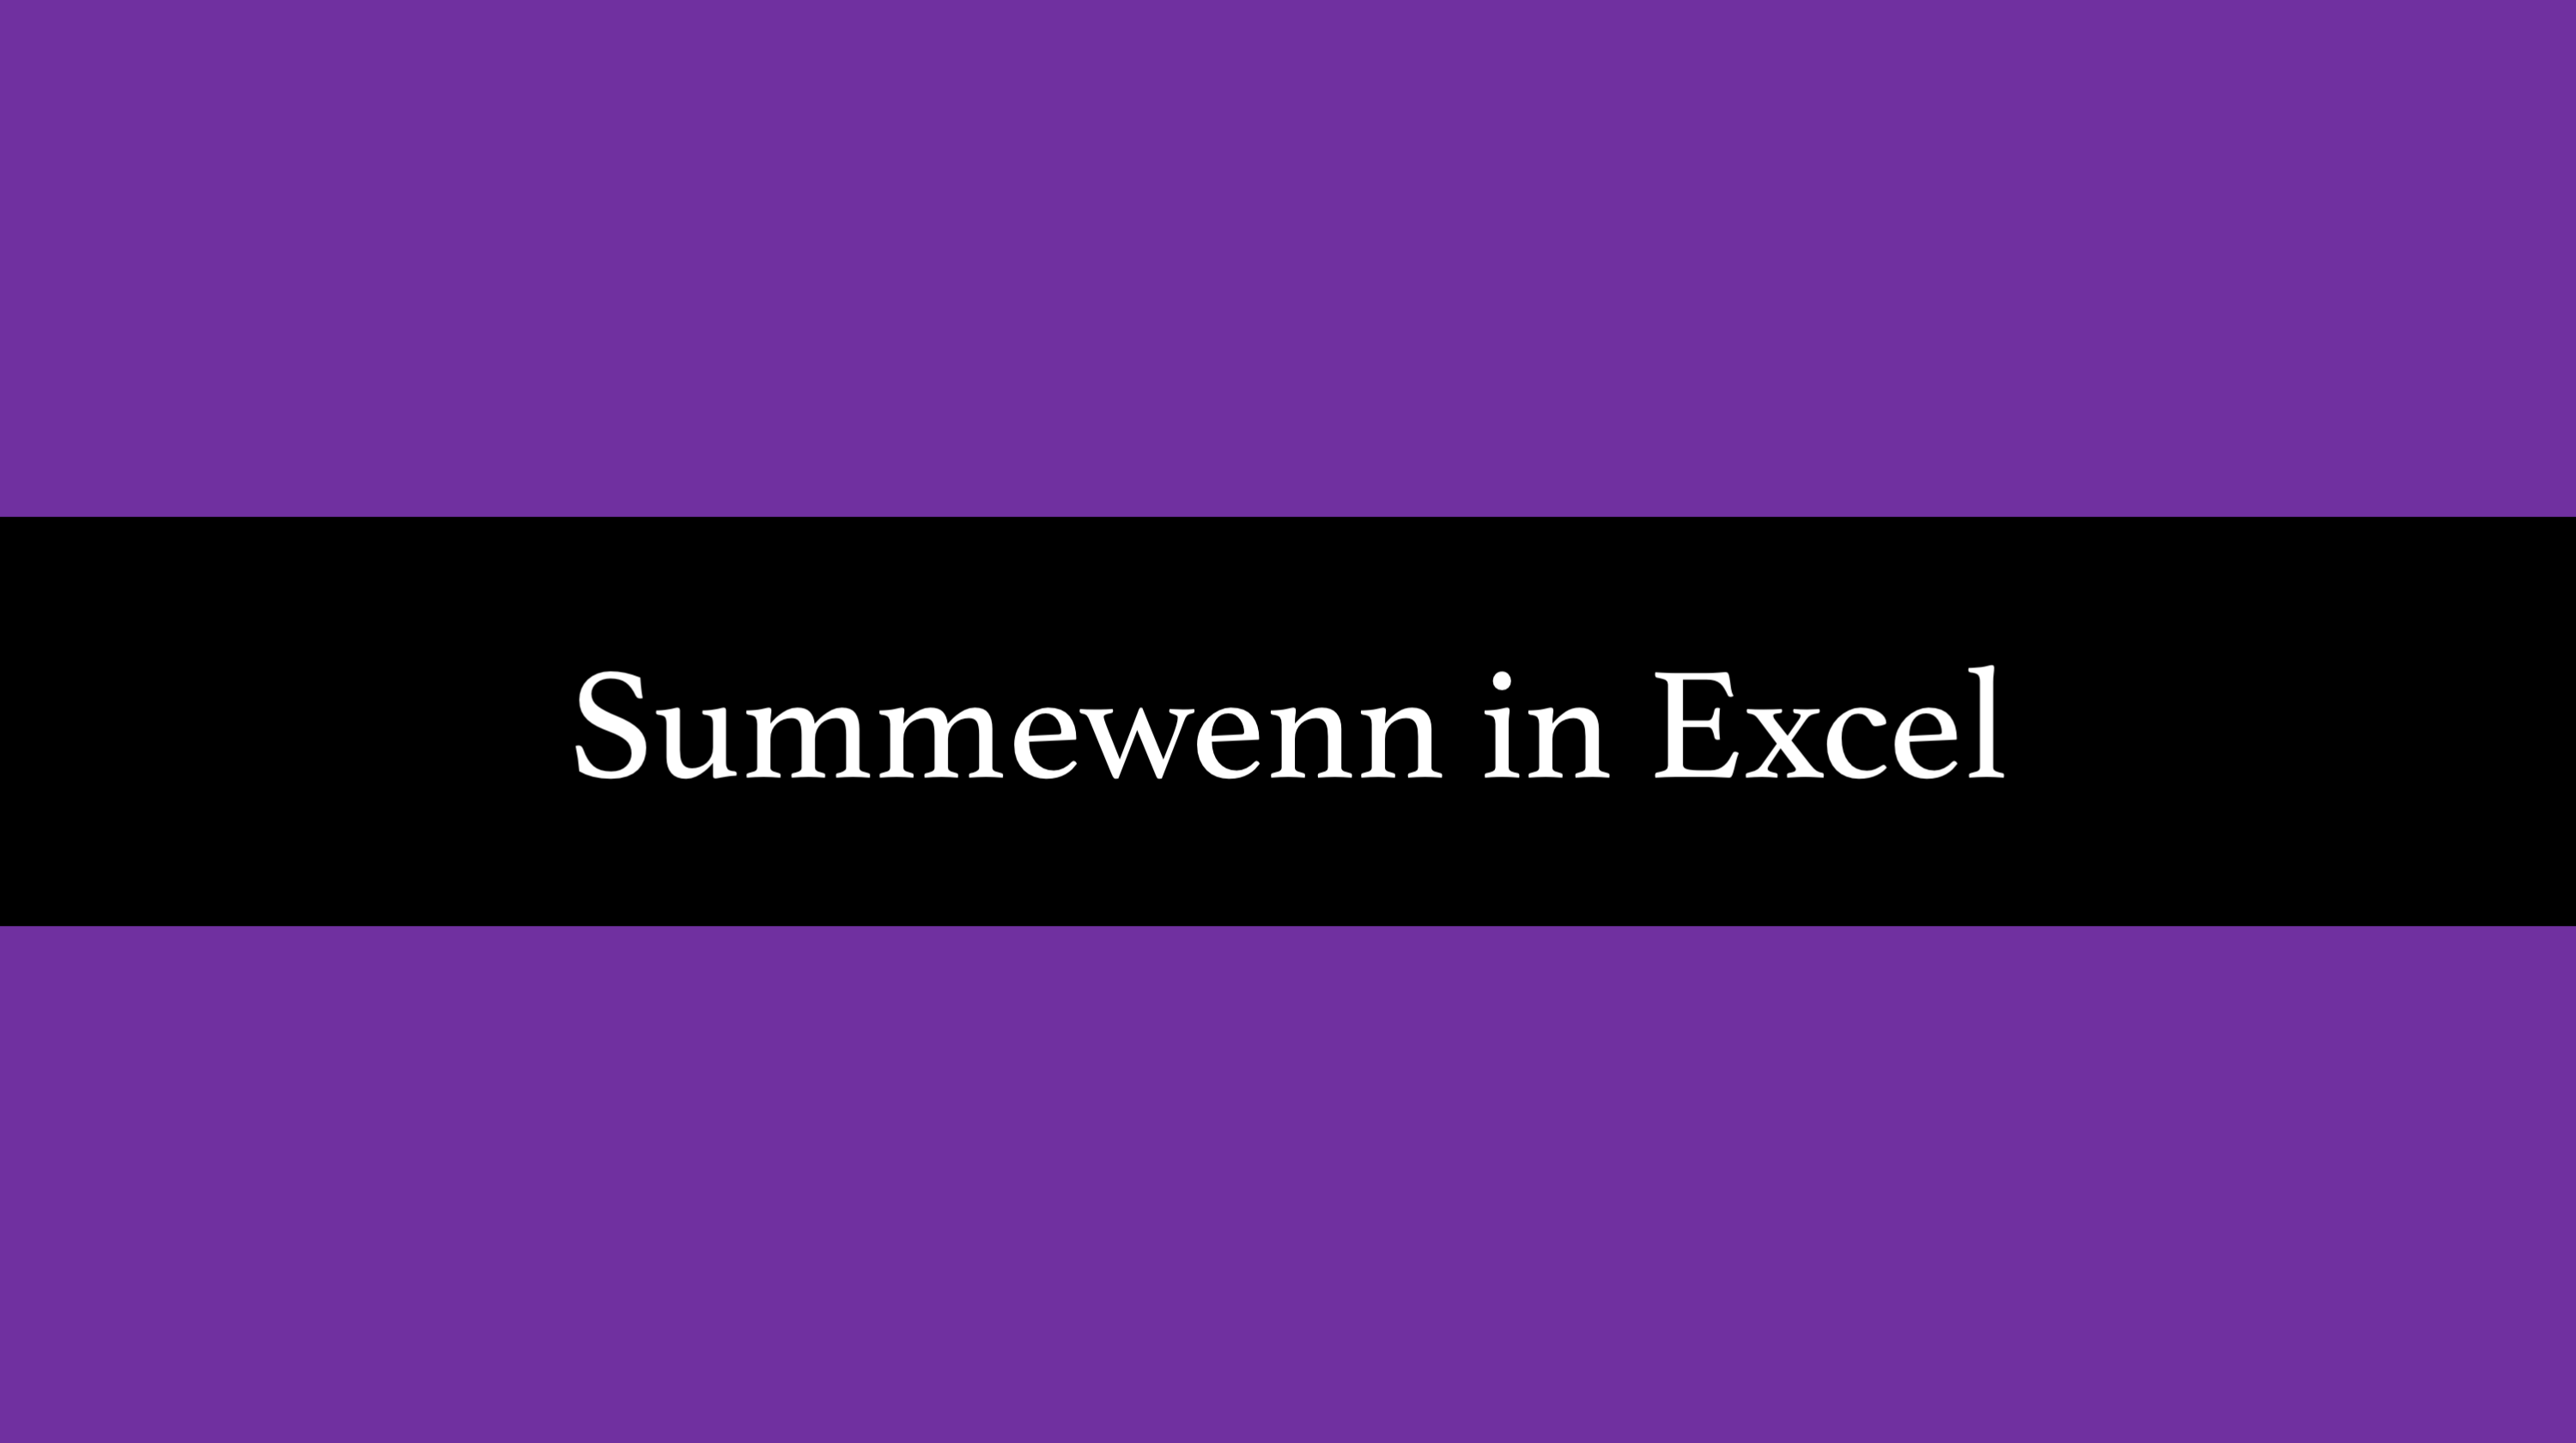 Die Summewenn Funktion in Excel